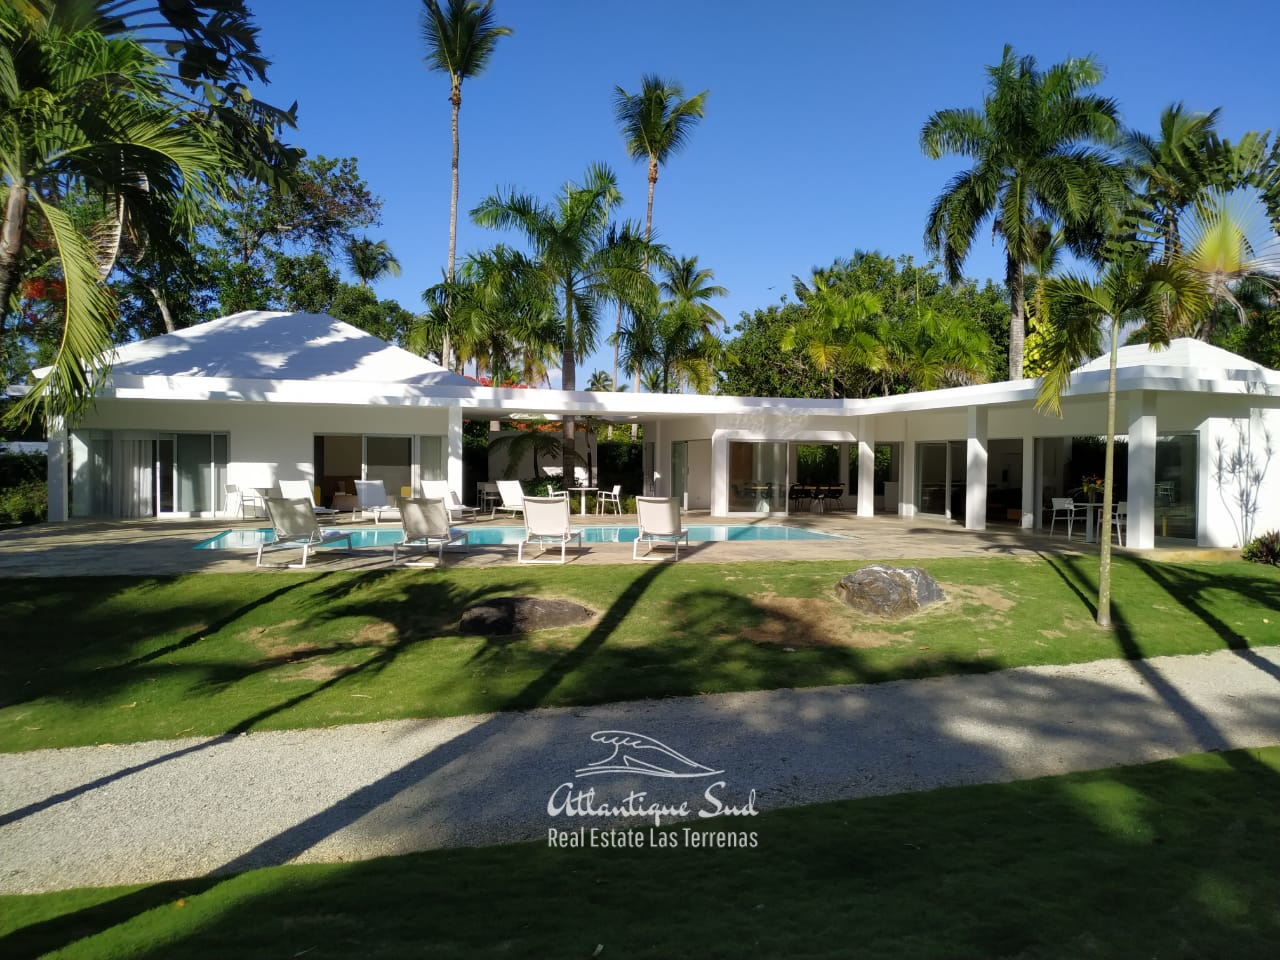 Outdoor villa for sale las terrenas.jpeg